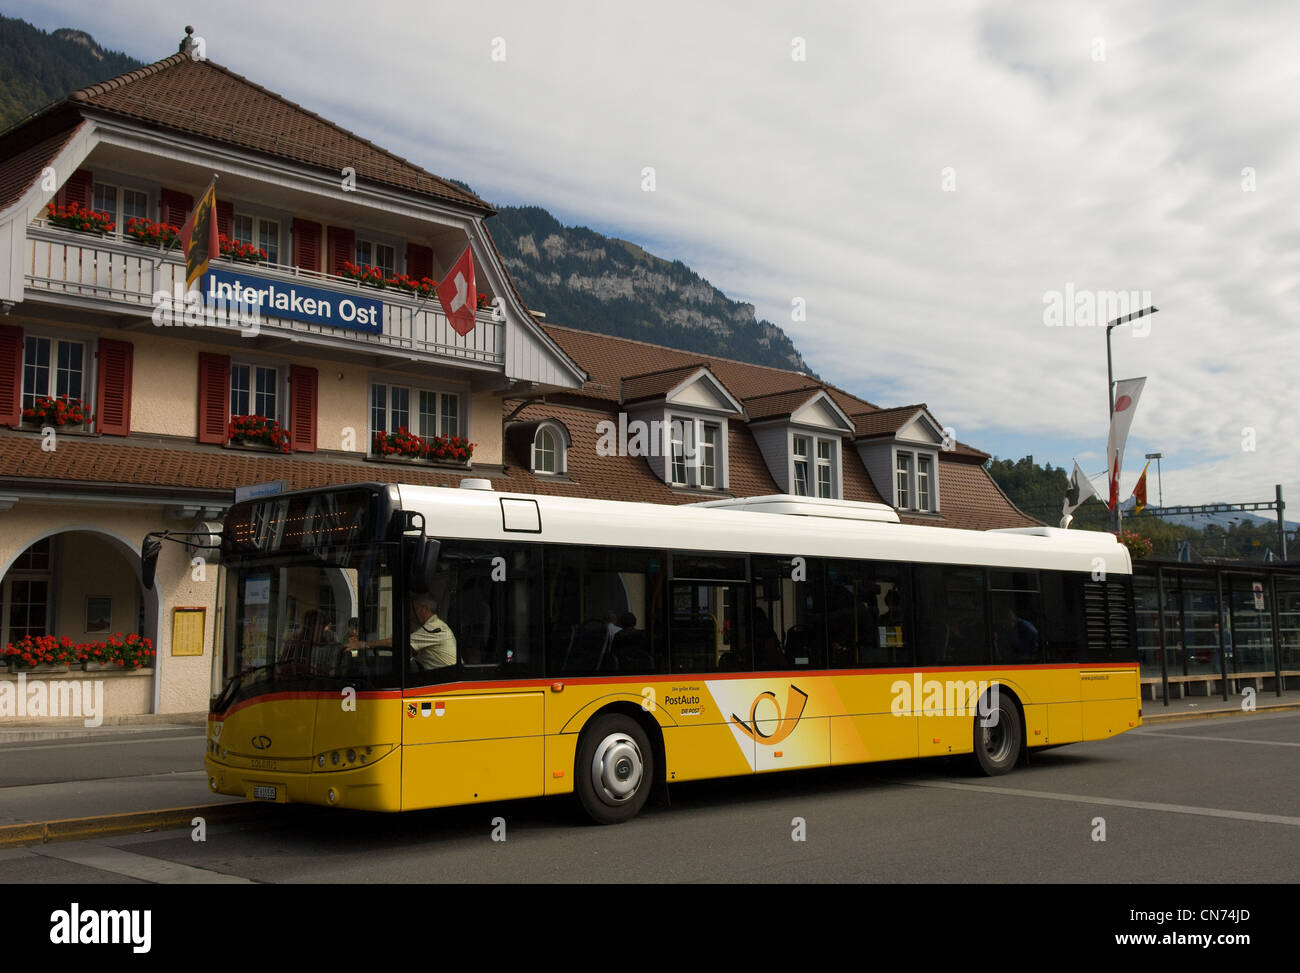 Bus outside the Ost station in Interlaken in the Canton of Bern in Switzerland - Stock Image